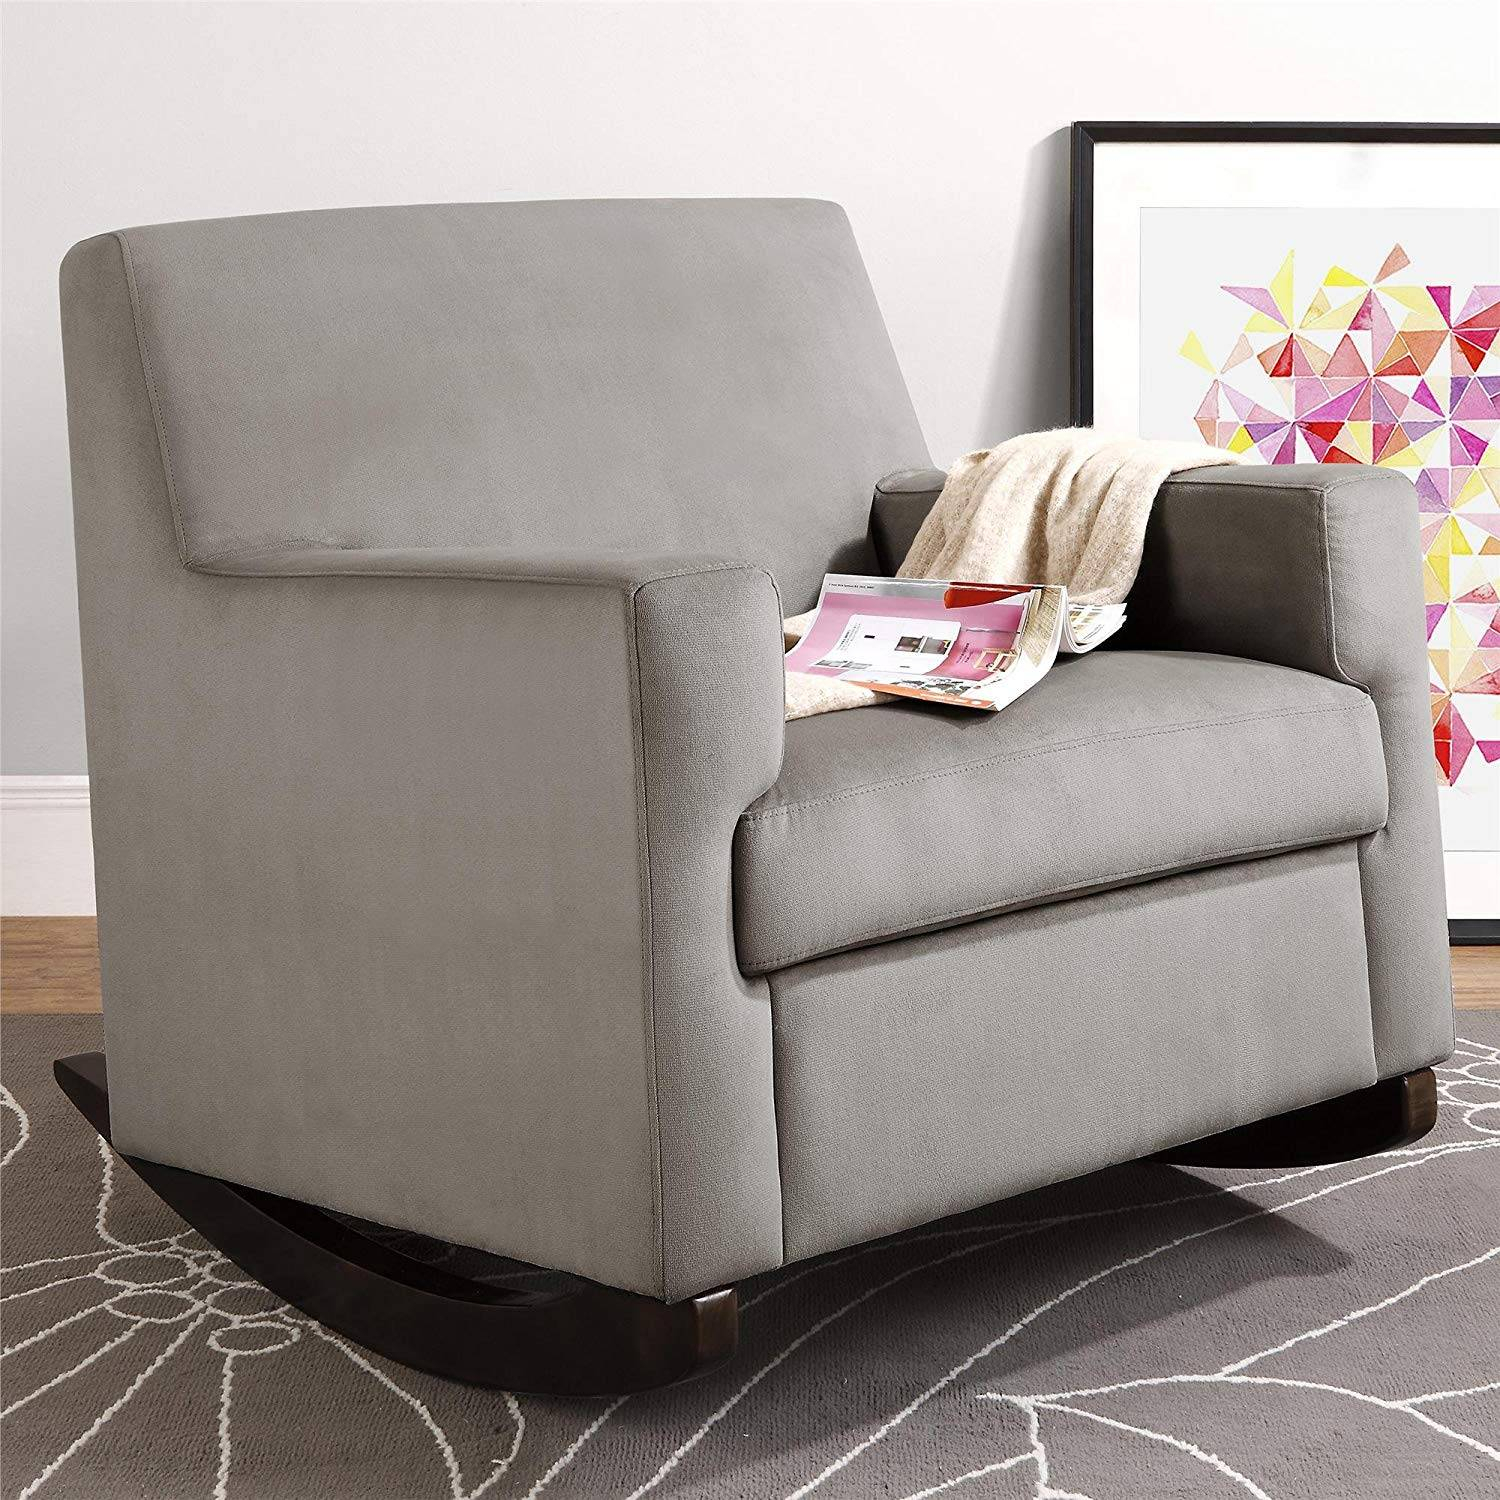 Inspiration about Rocker For Baby Room Recliner Nursery Small Rocking Chair Regarding Wooden Baby Nursery Rocking Chairs (#9 of 20)